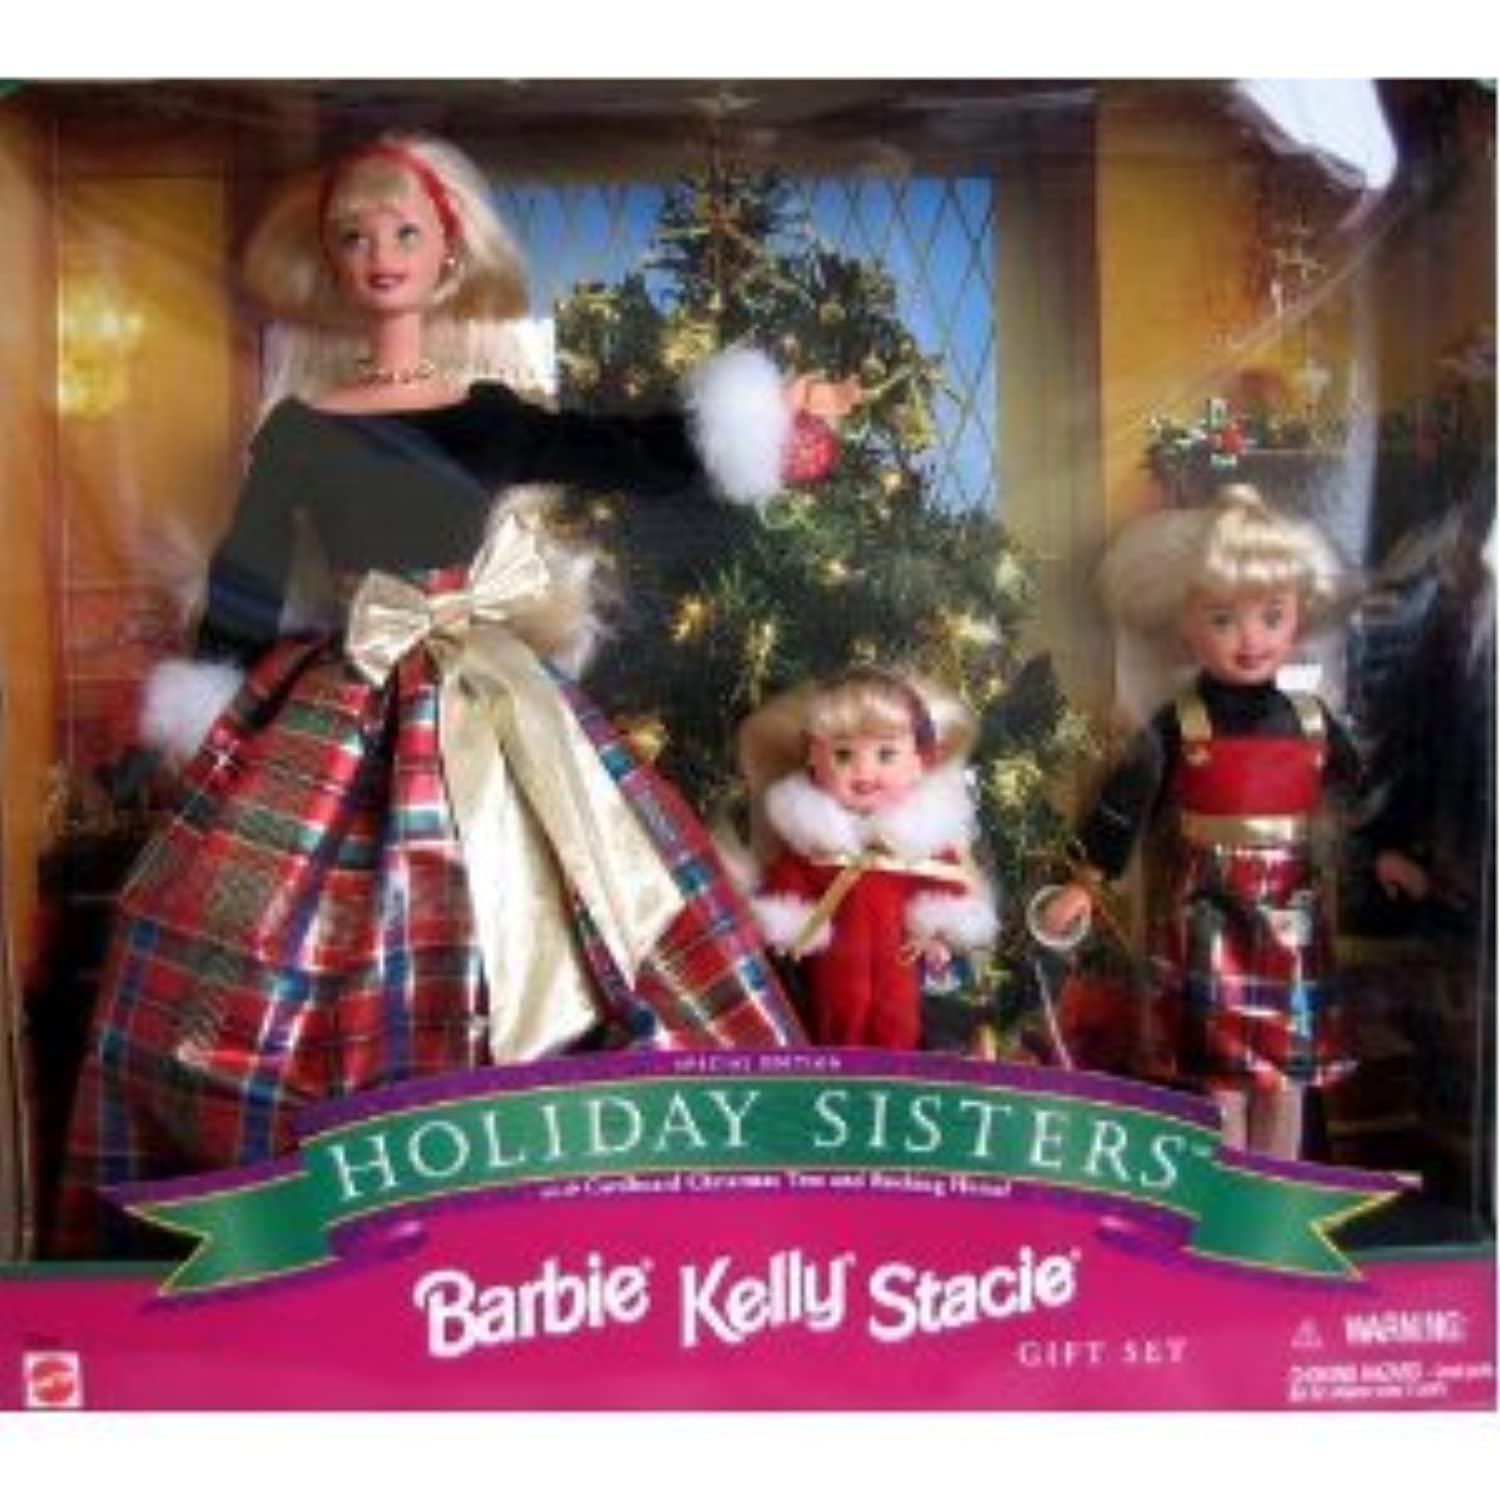 RARE, STUNNING 1998 Special Edition Barbie(バービー) KELLY STACIE Holiday Sisters Gift Set ドール 人形 フィギュア(並行輸入)